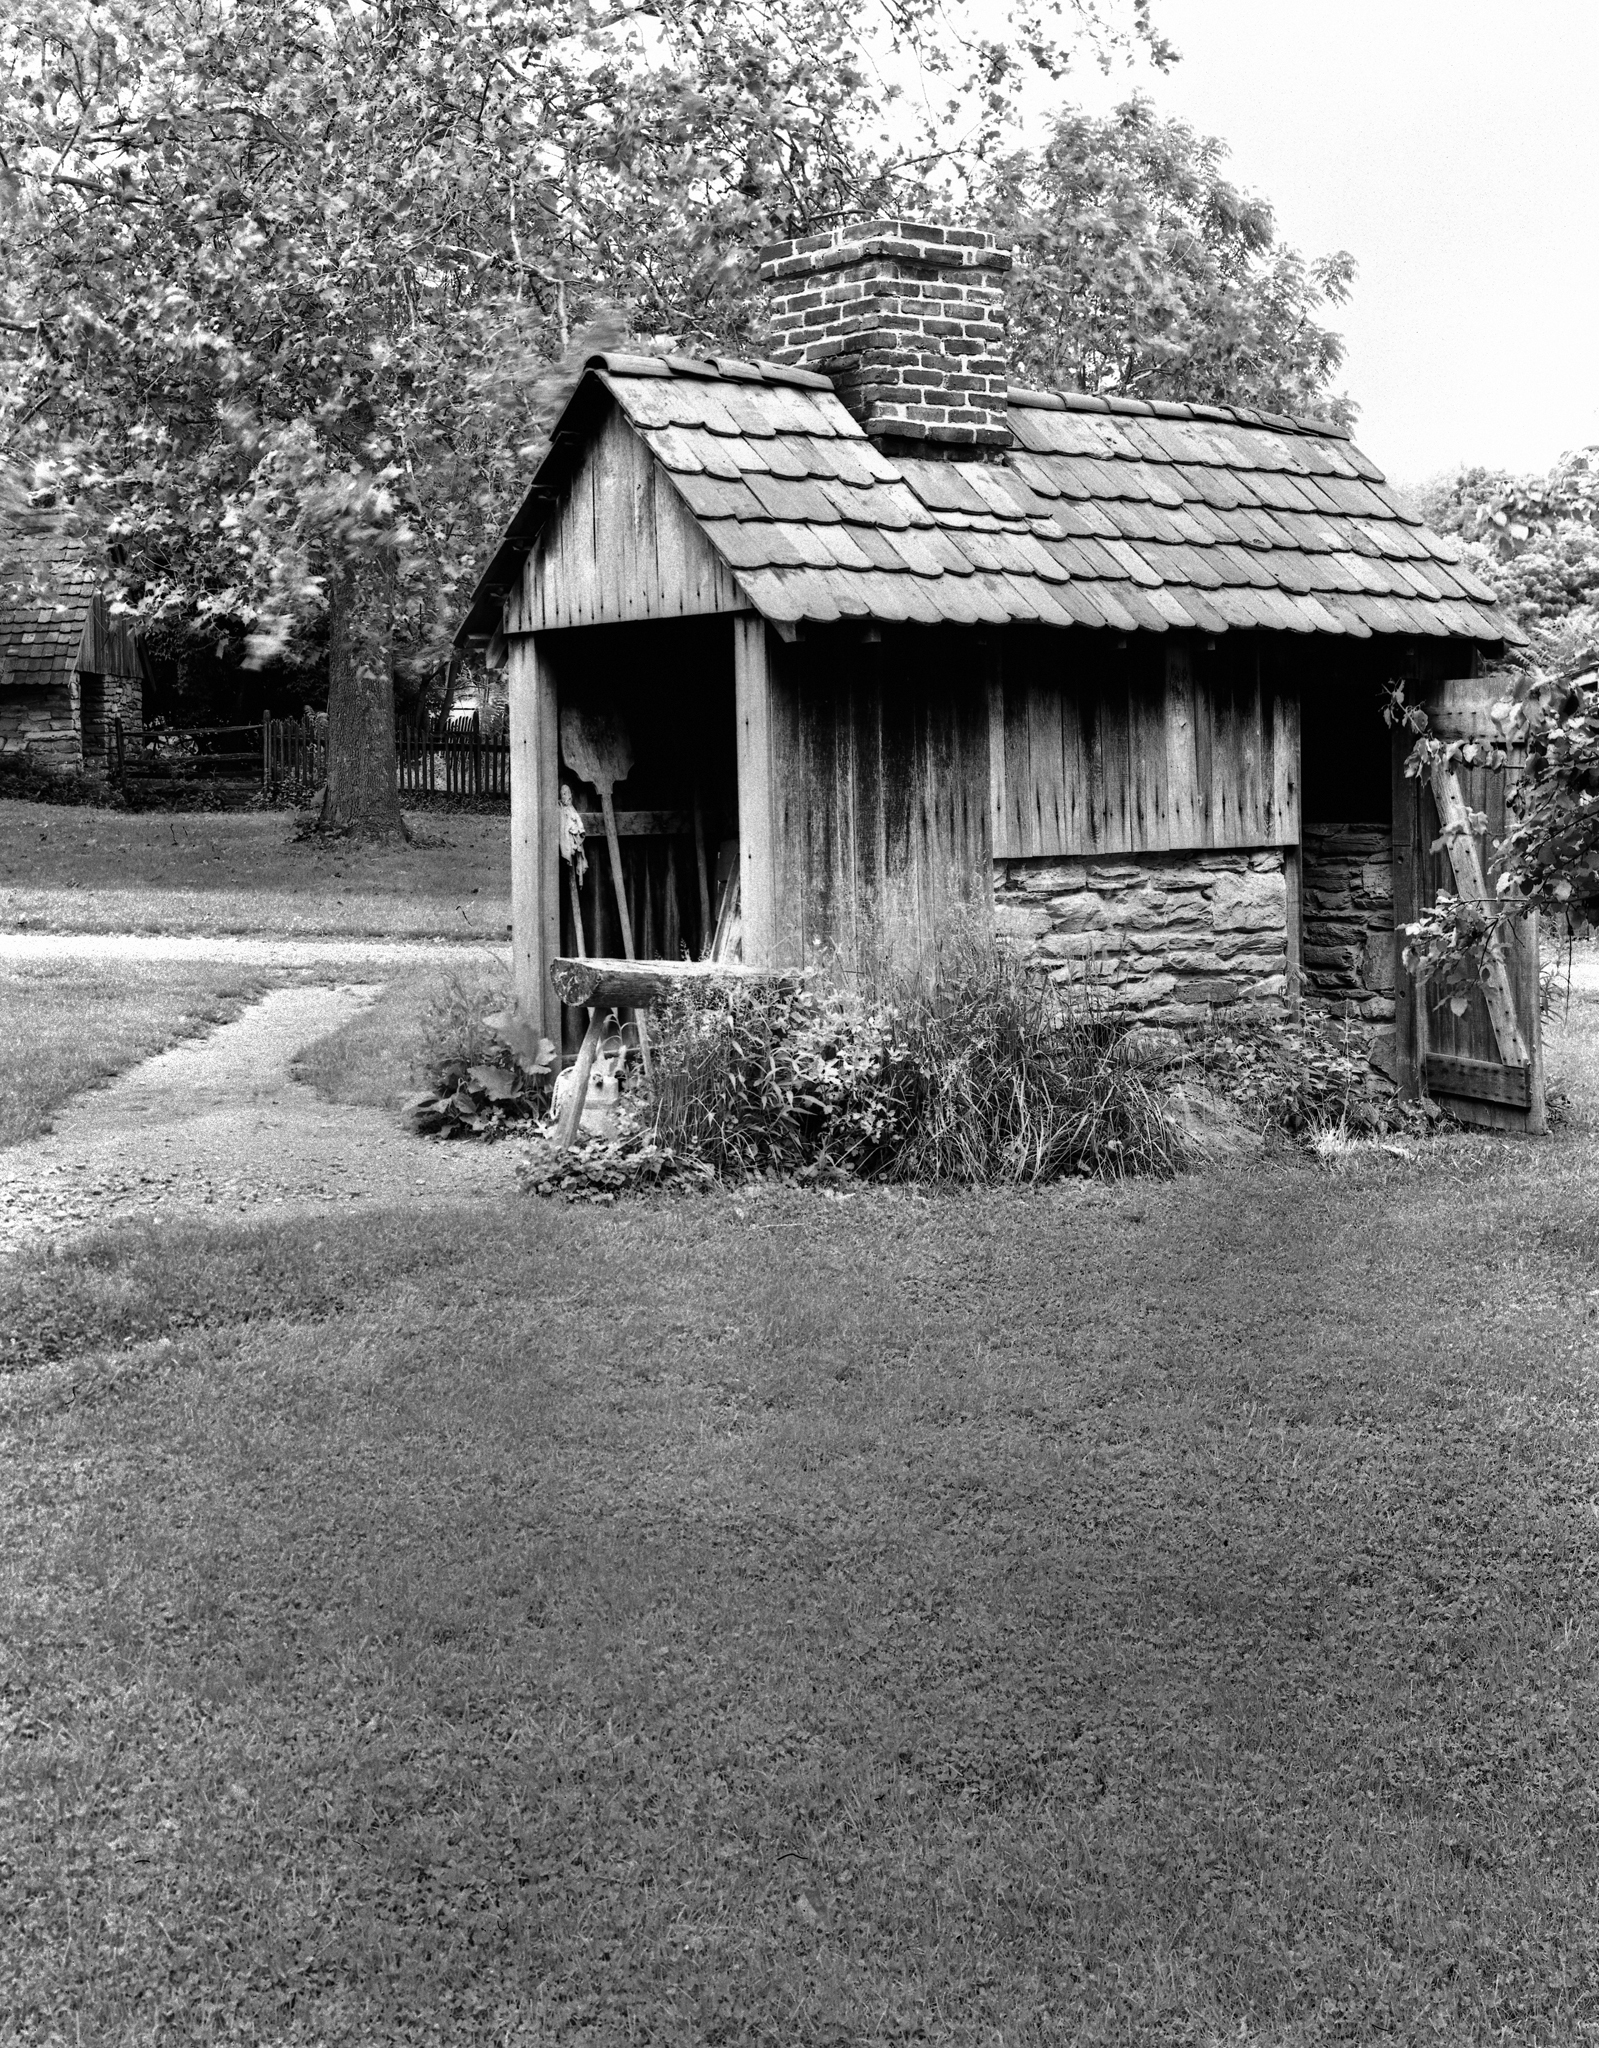 4x5_for_365_project_0172_Landis_Valley_tool_shed.jpg